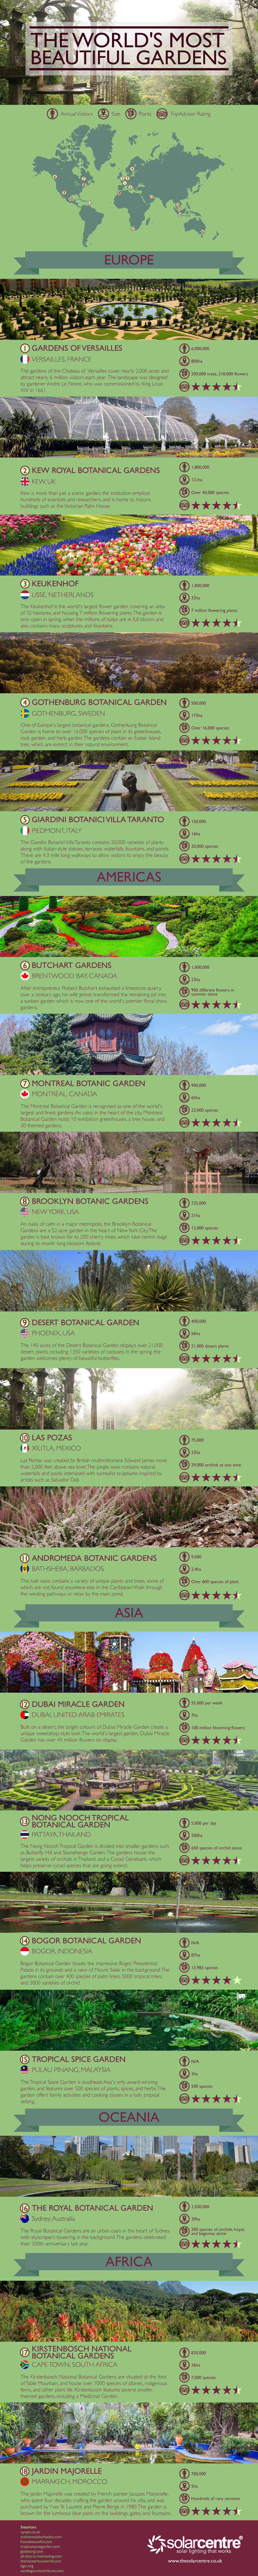 the world's most beautiful gardens